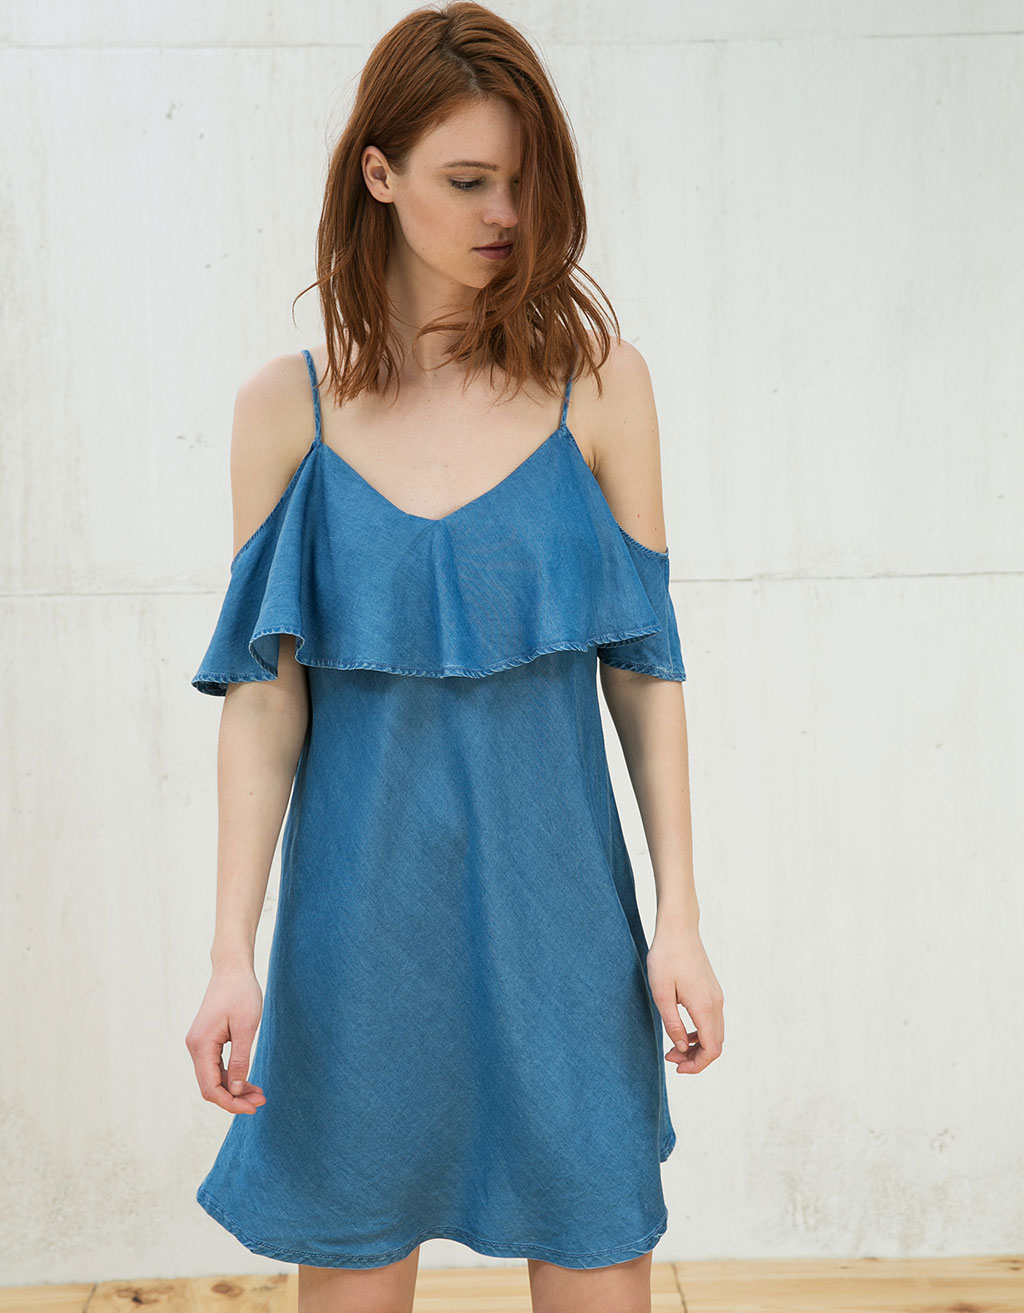 Tencel-Kleid Off-Shoulder mit Rüsche